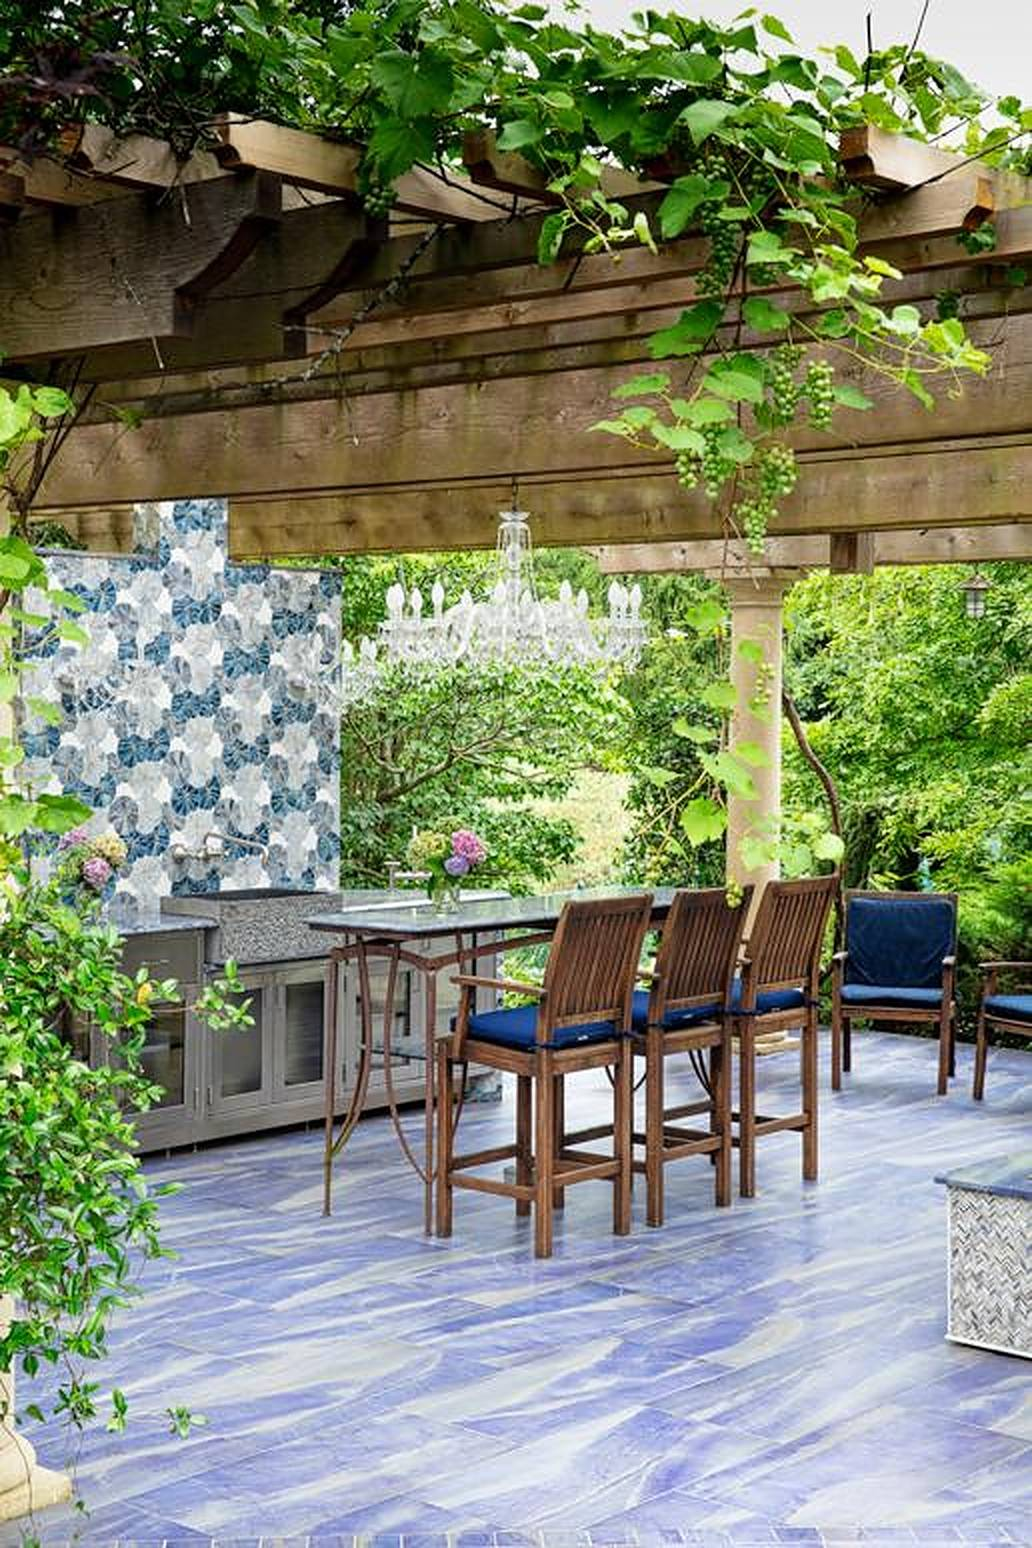 Patio with blue flooring